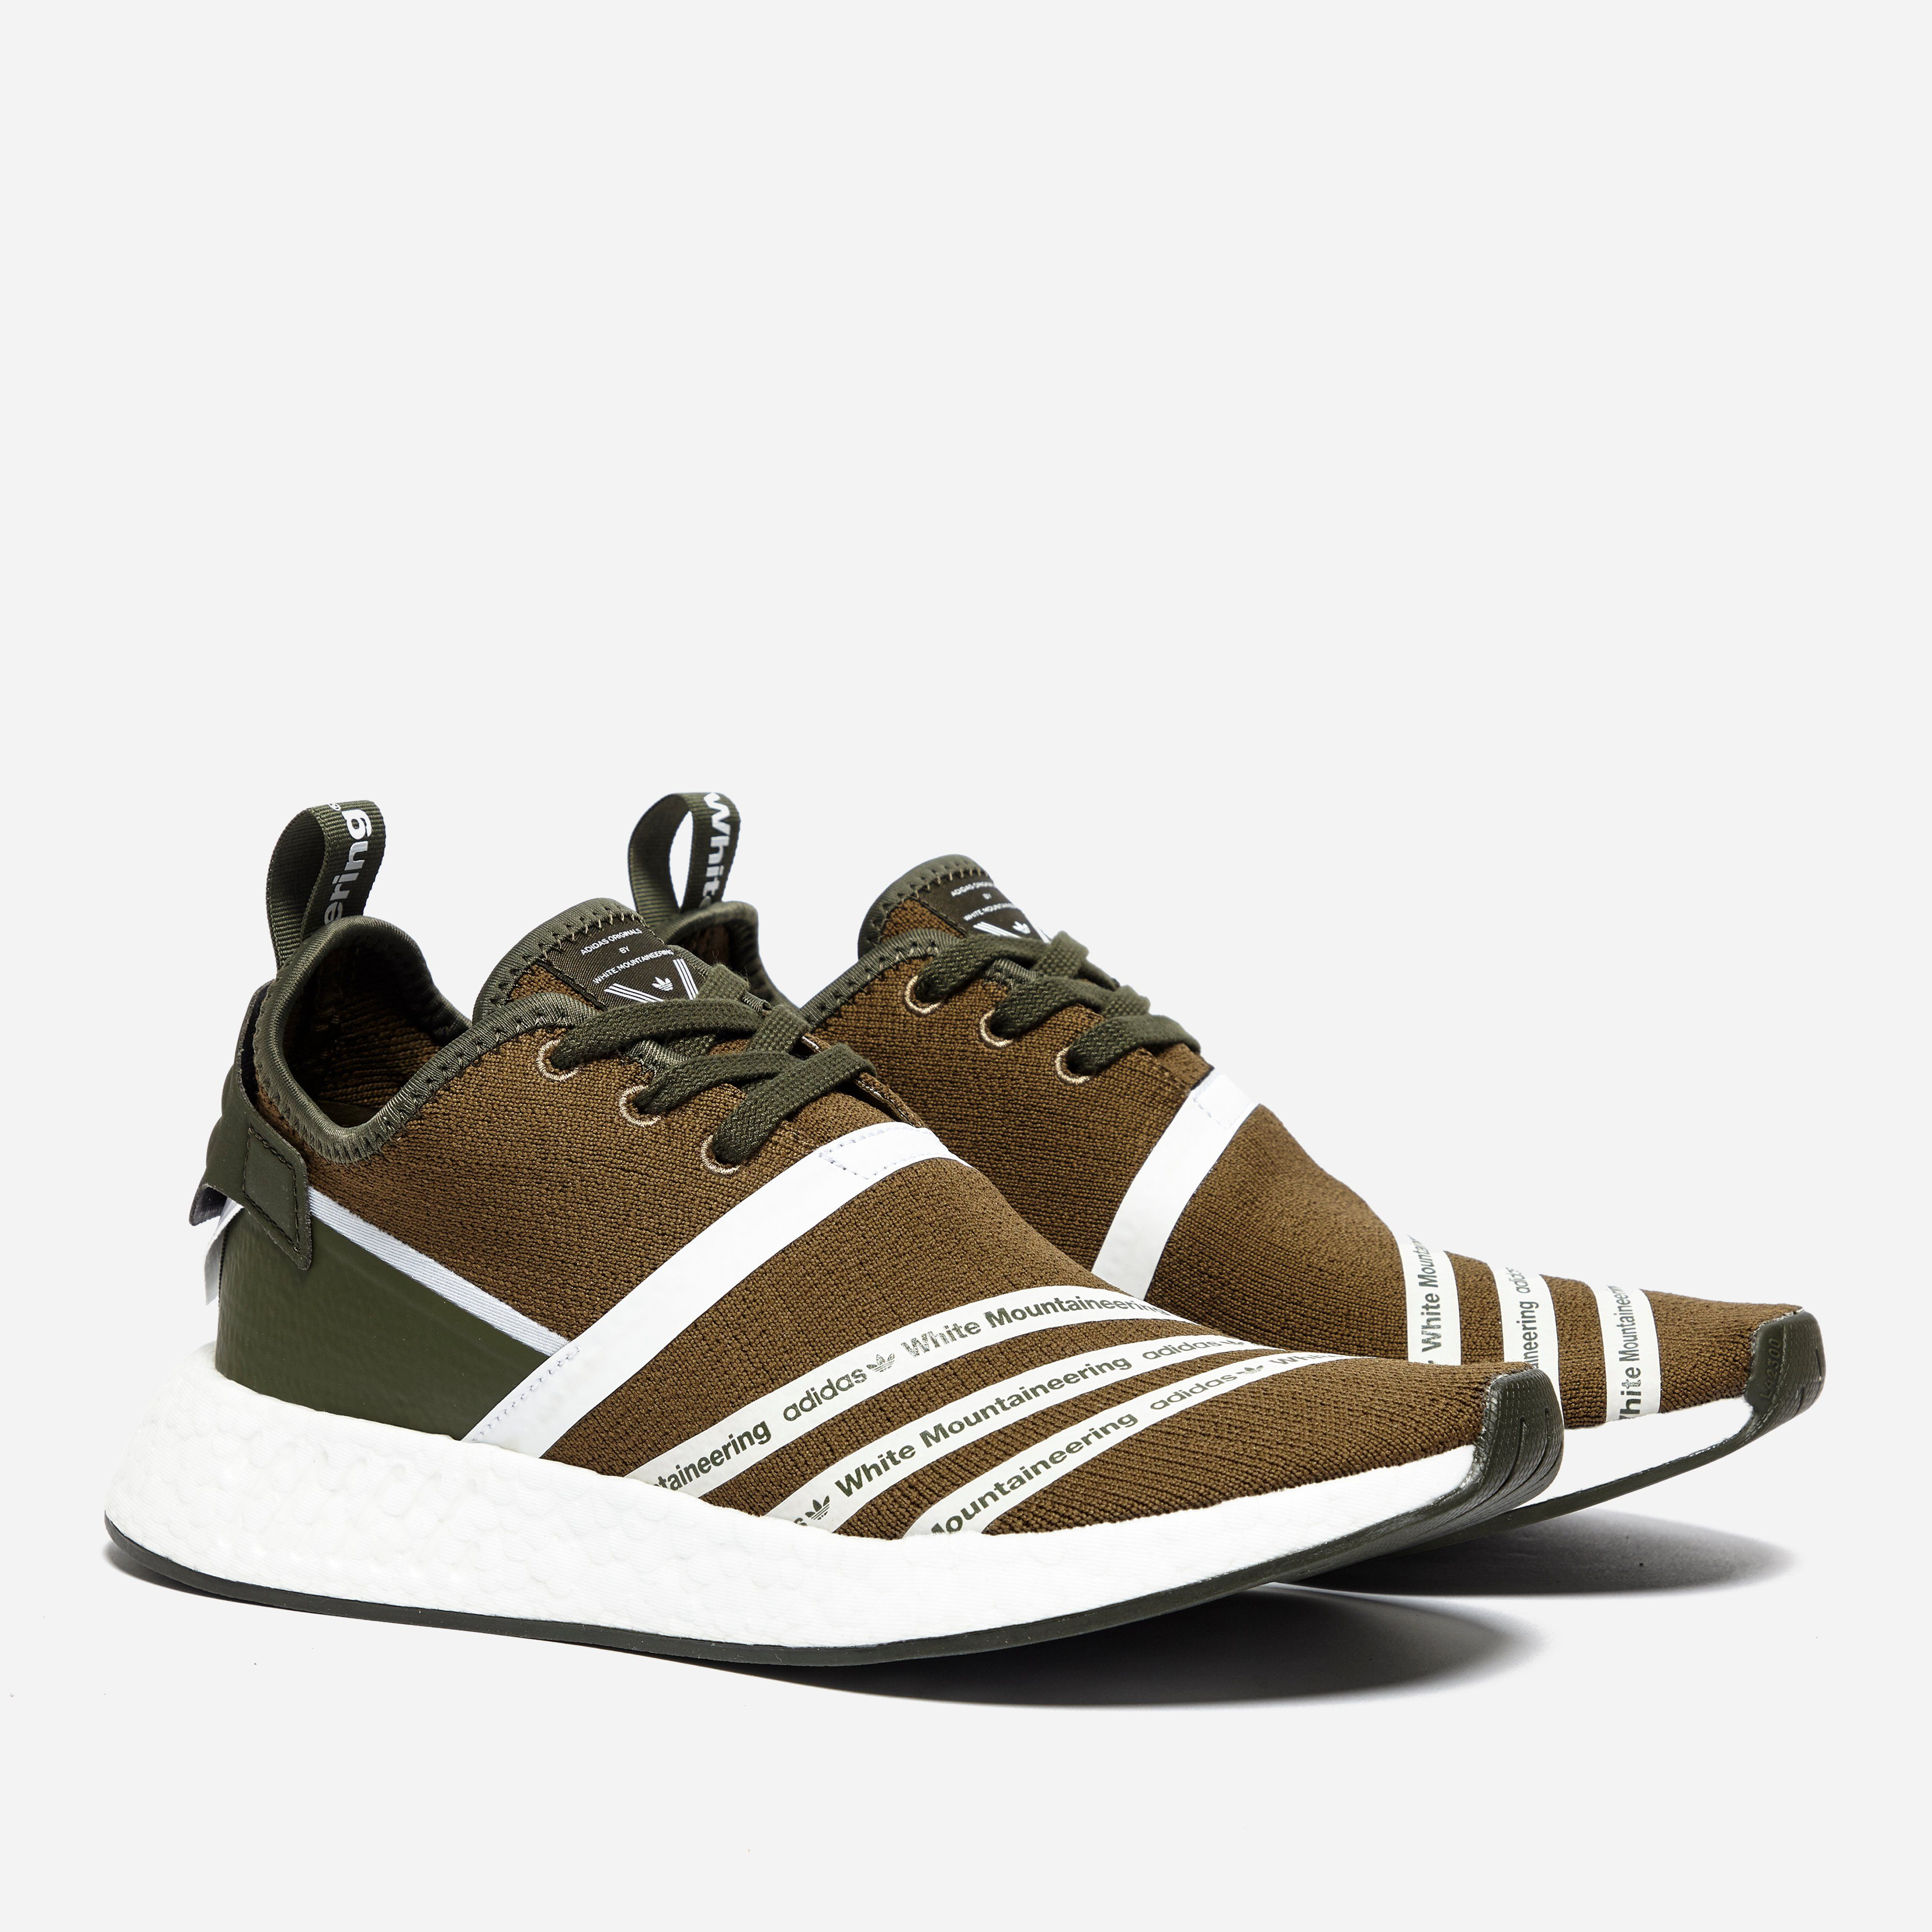 adidas Originals X White Mountaineering NMD R2 PK